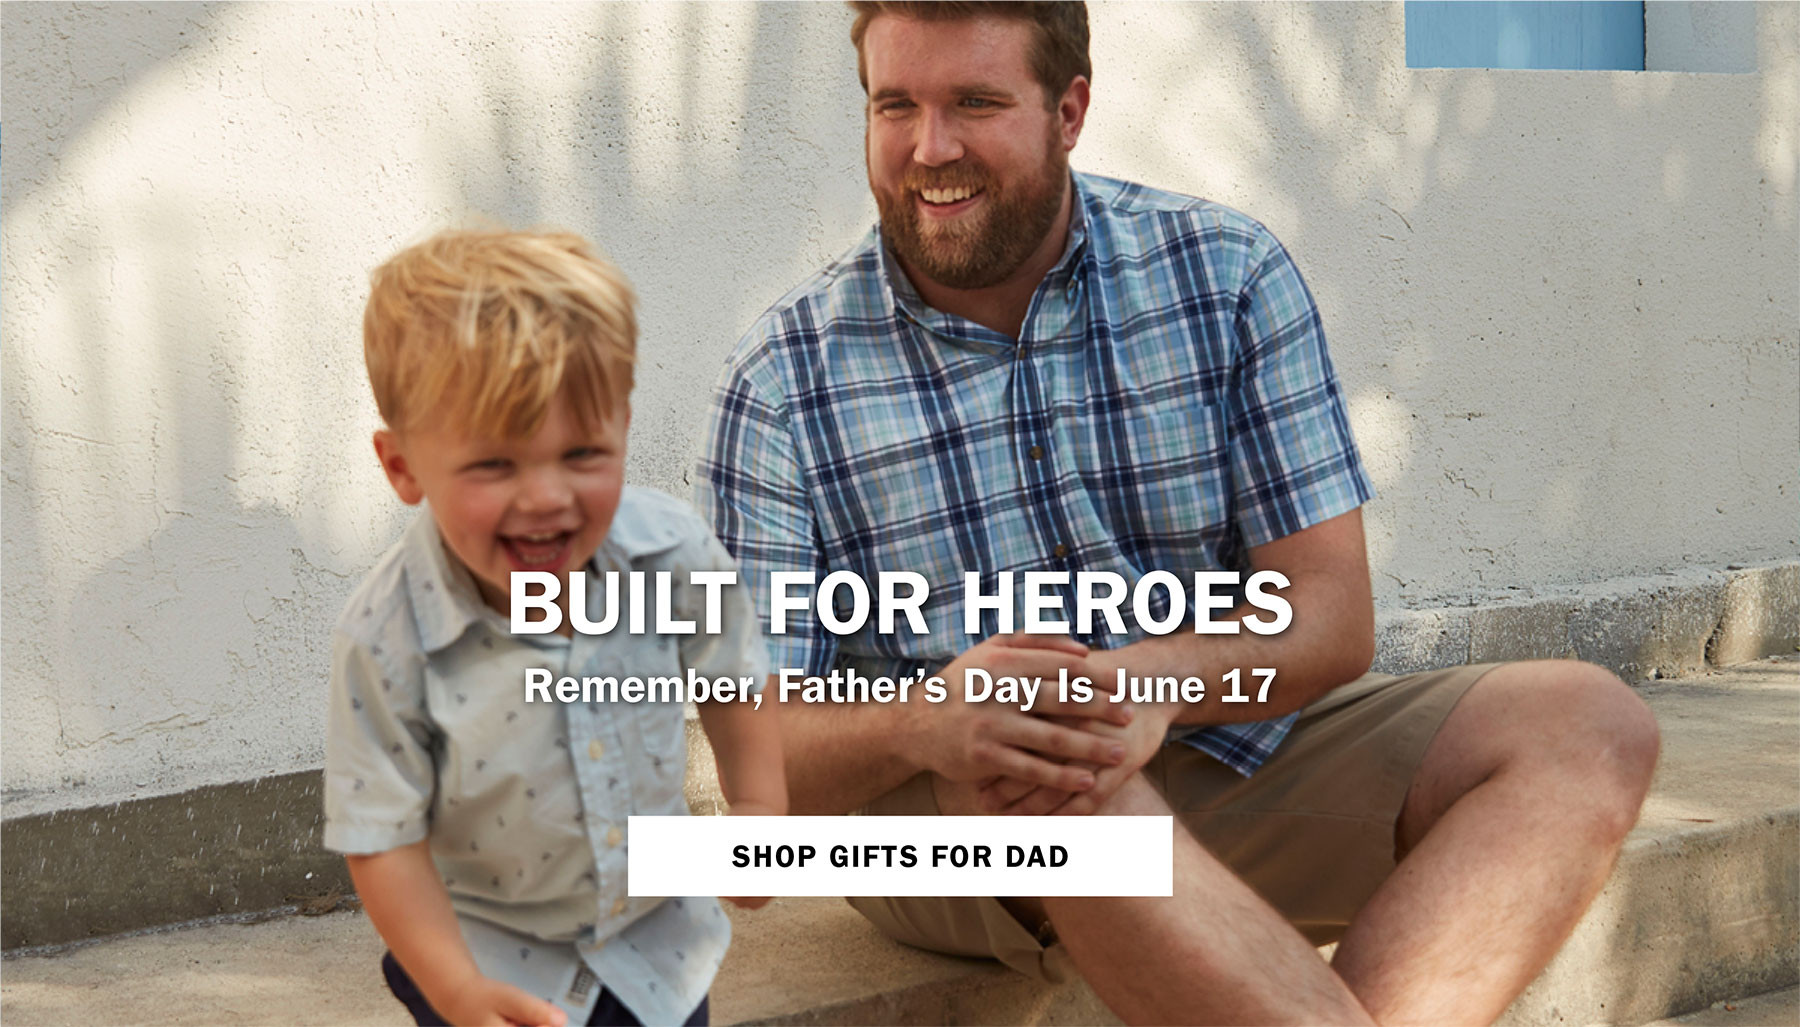 BUILT FOR HEROES | REMEBER, FATHER'S DAY IS JUNE 17 | SHOP GIFTS FOR DAD